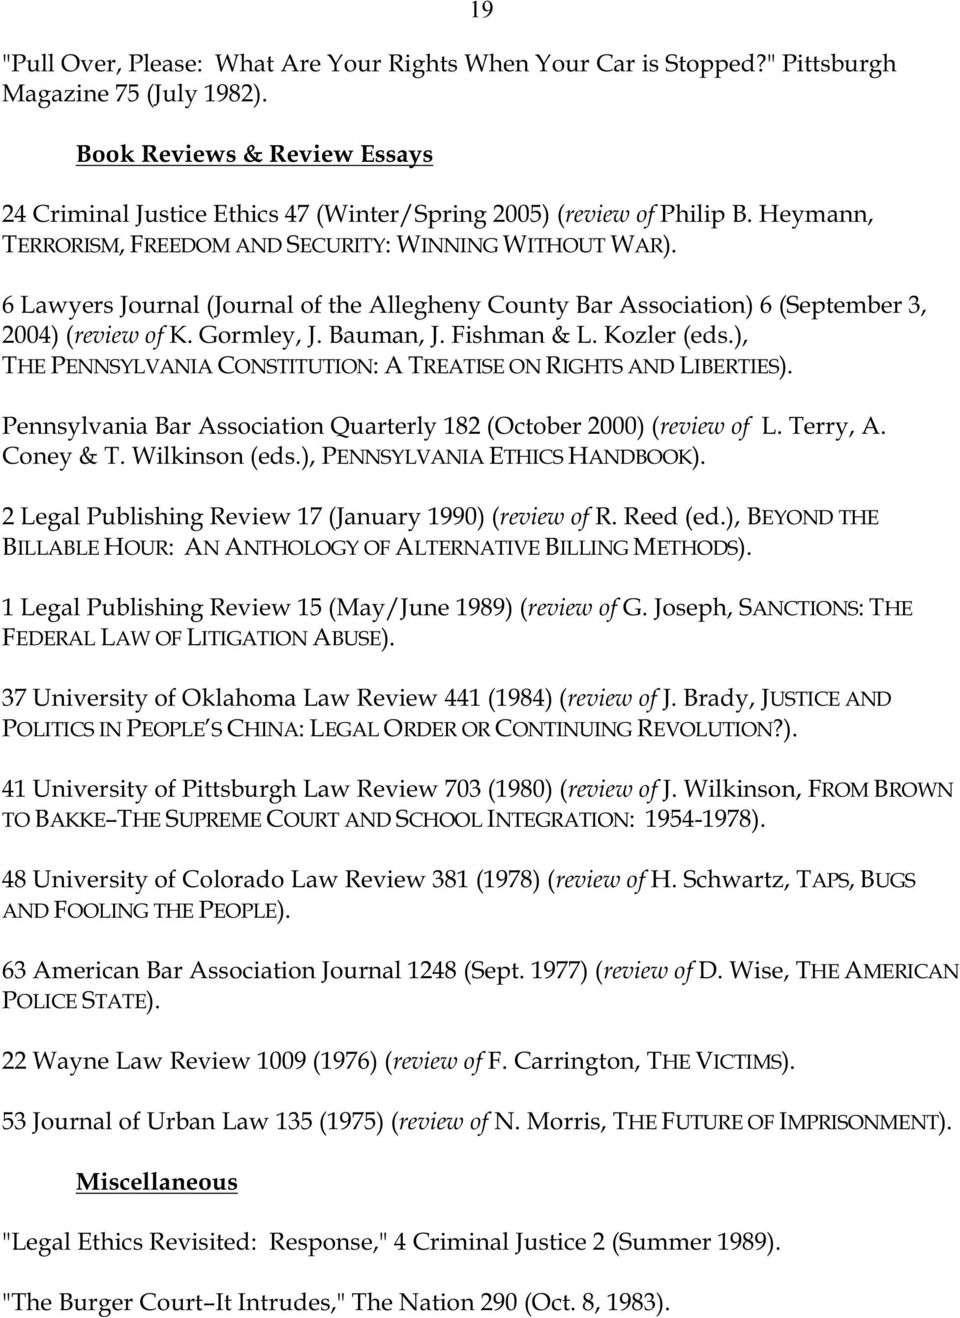 6 Lawyers Journal (Journal of the Allegheny County Bar Association) 6 (September 3, 2004) (review of K. Gormley, J. Bauman, J. Fishman & L. Kozler (eds.